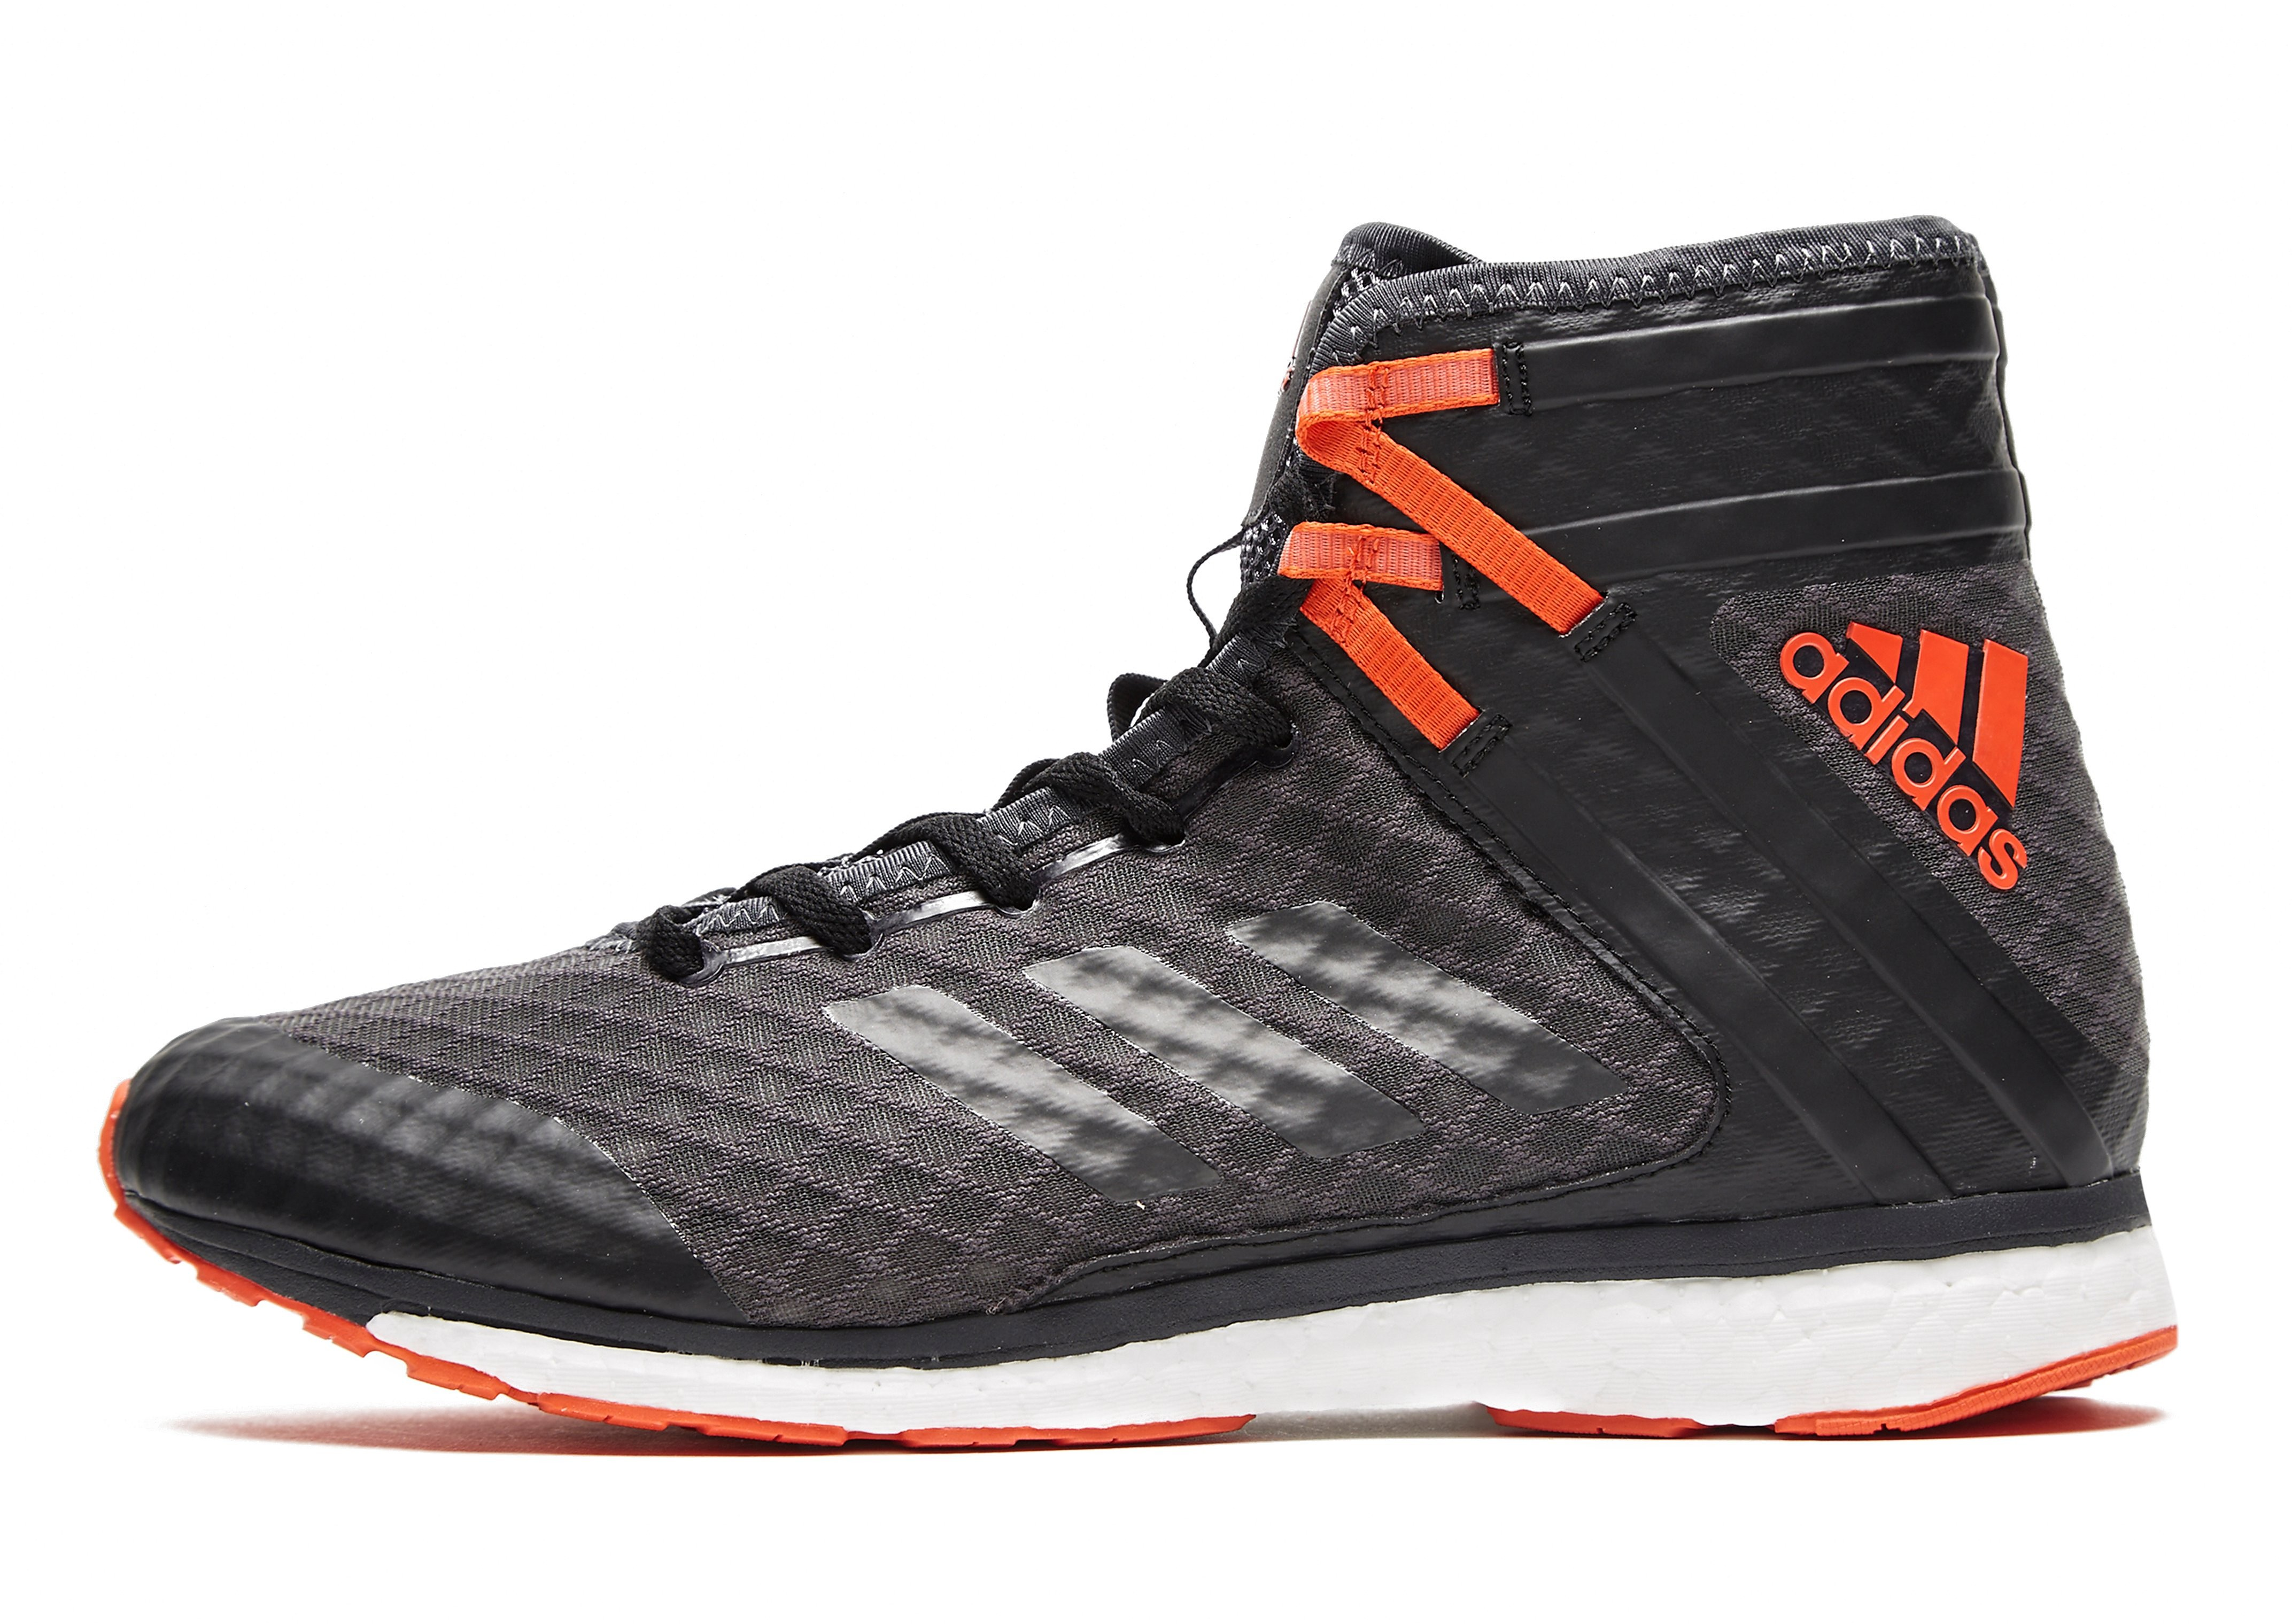 adidas SPEEDEX 16.1 BOOST Boxing Shoes